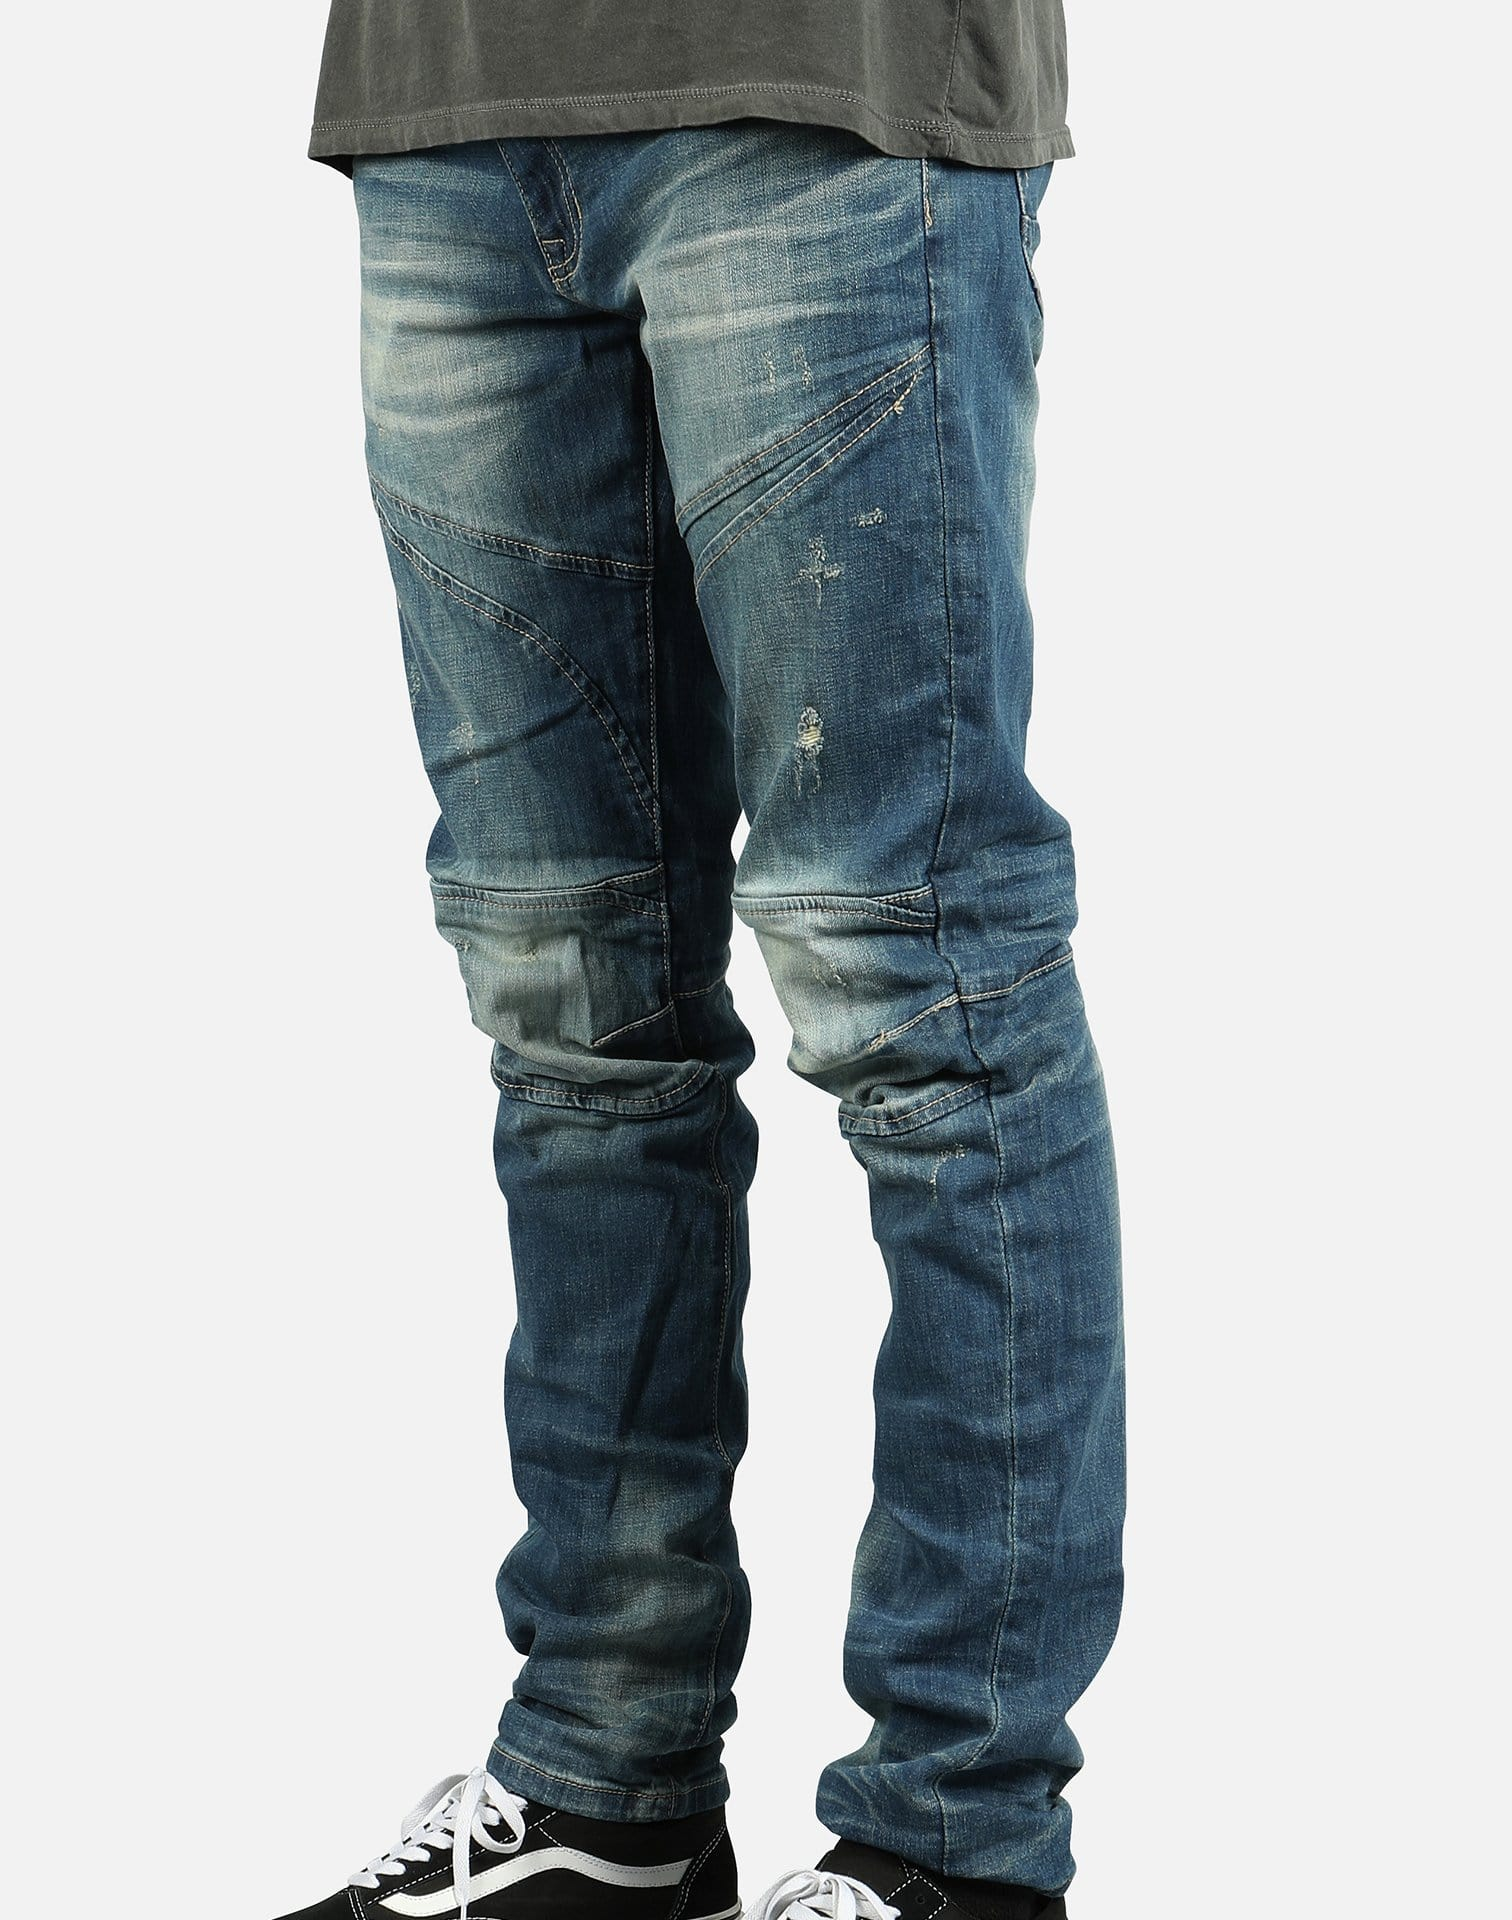 Smoke Rise Men's Fashion Denim Jeans